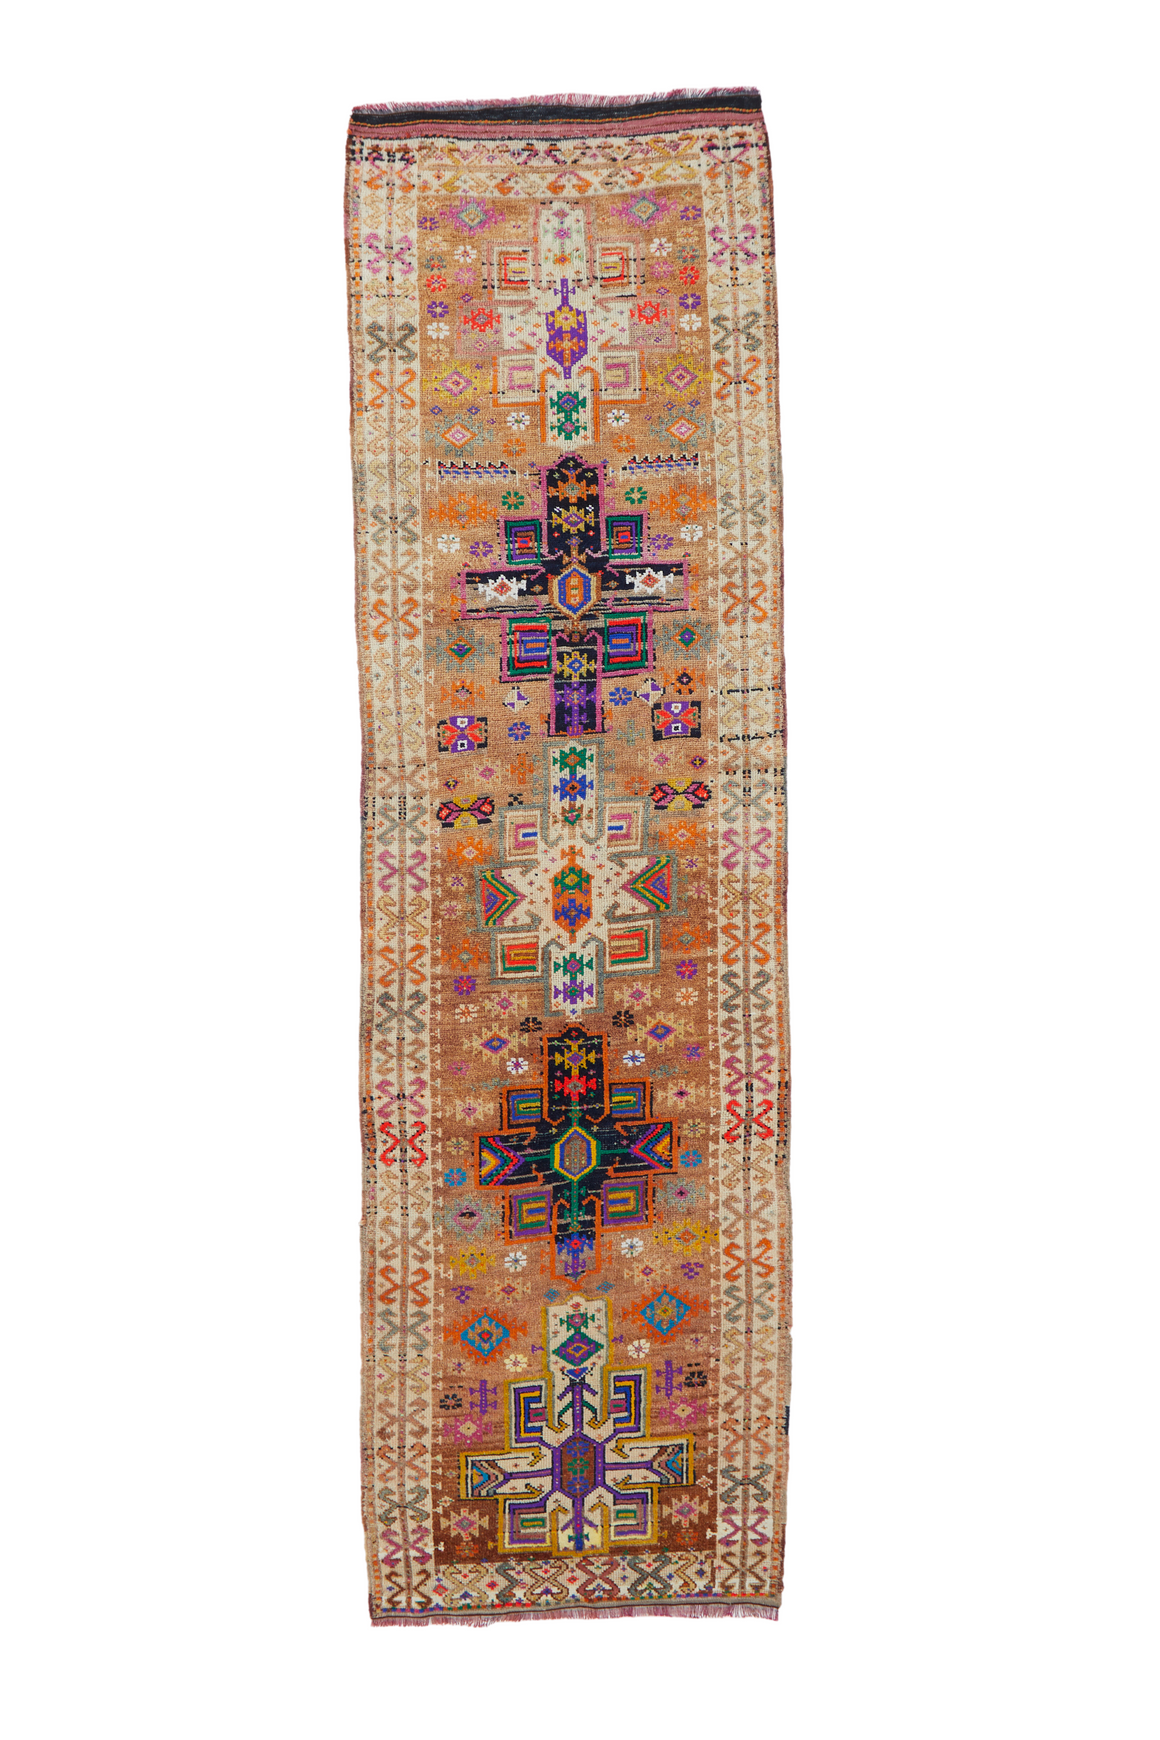 "'Lottie' Vintage Turkish Runner Rug - 3'3"" x 11'5"""